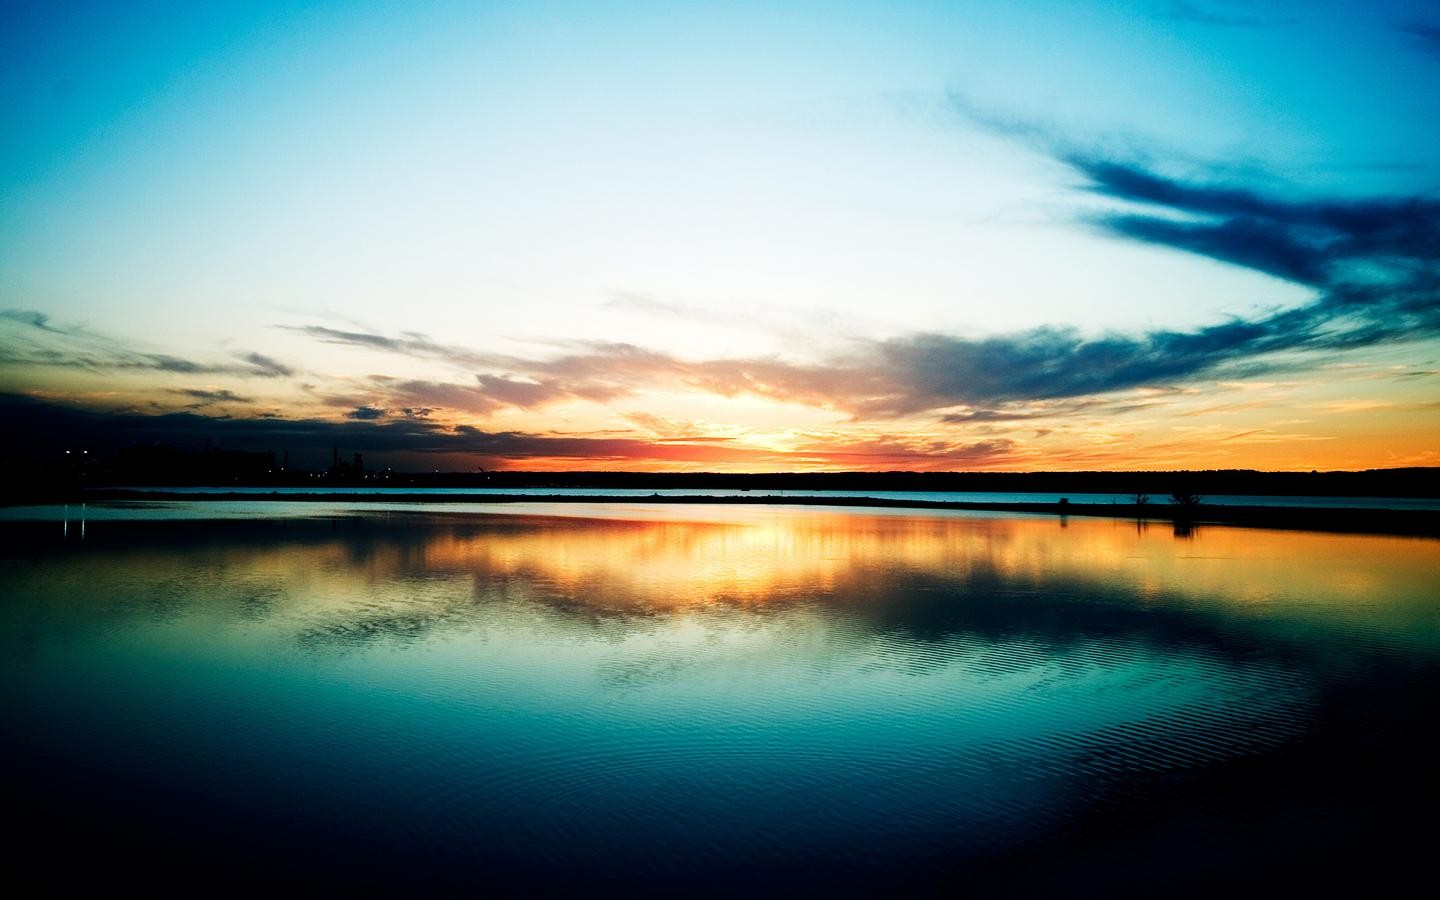 Identifying with the Reflective Christian